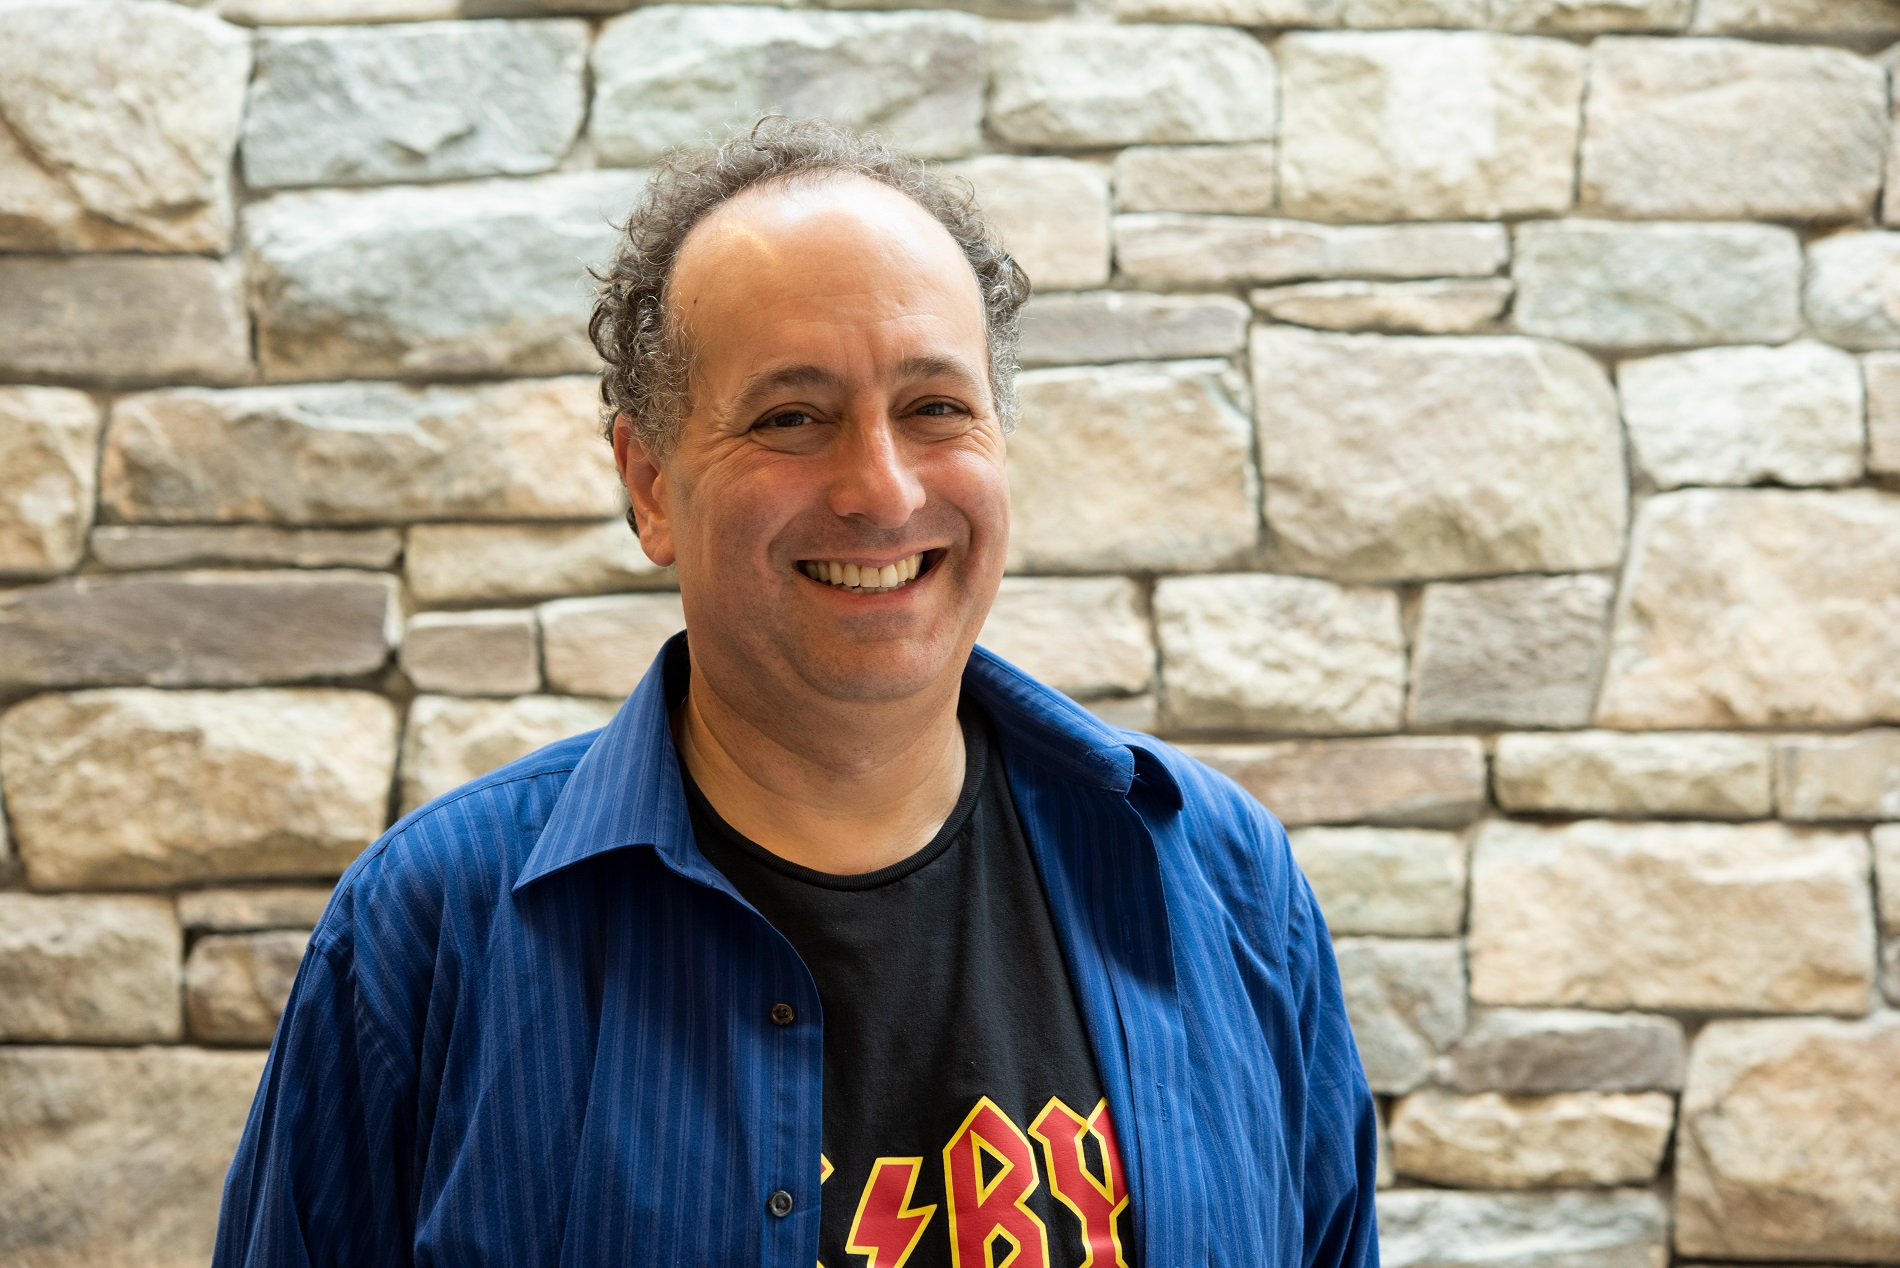 Mike Eisen, Editor-in-Chief, eLife